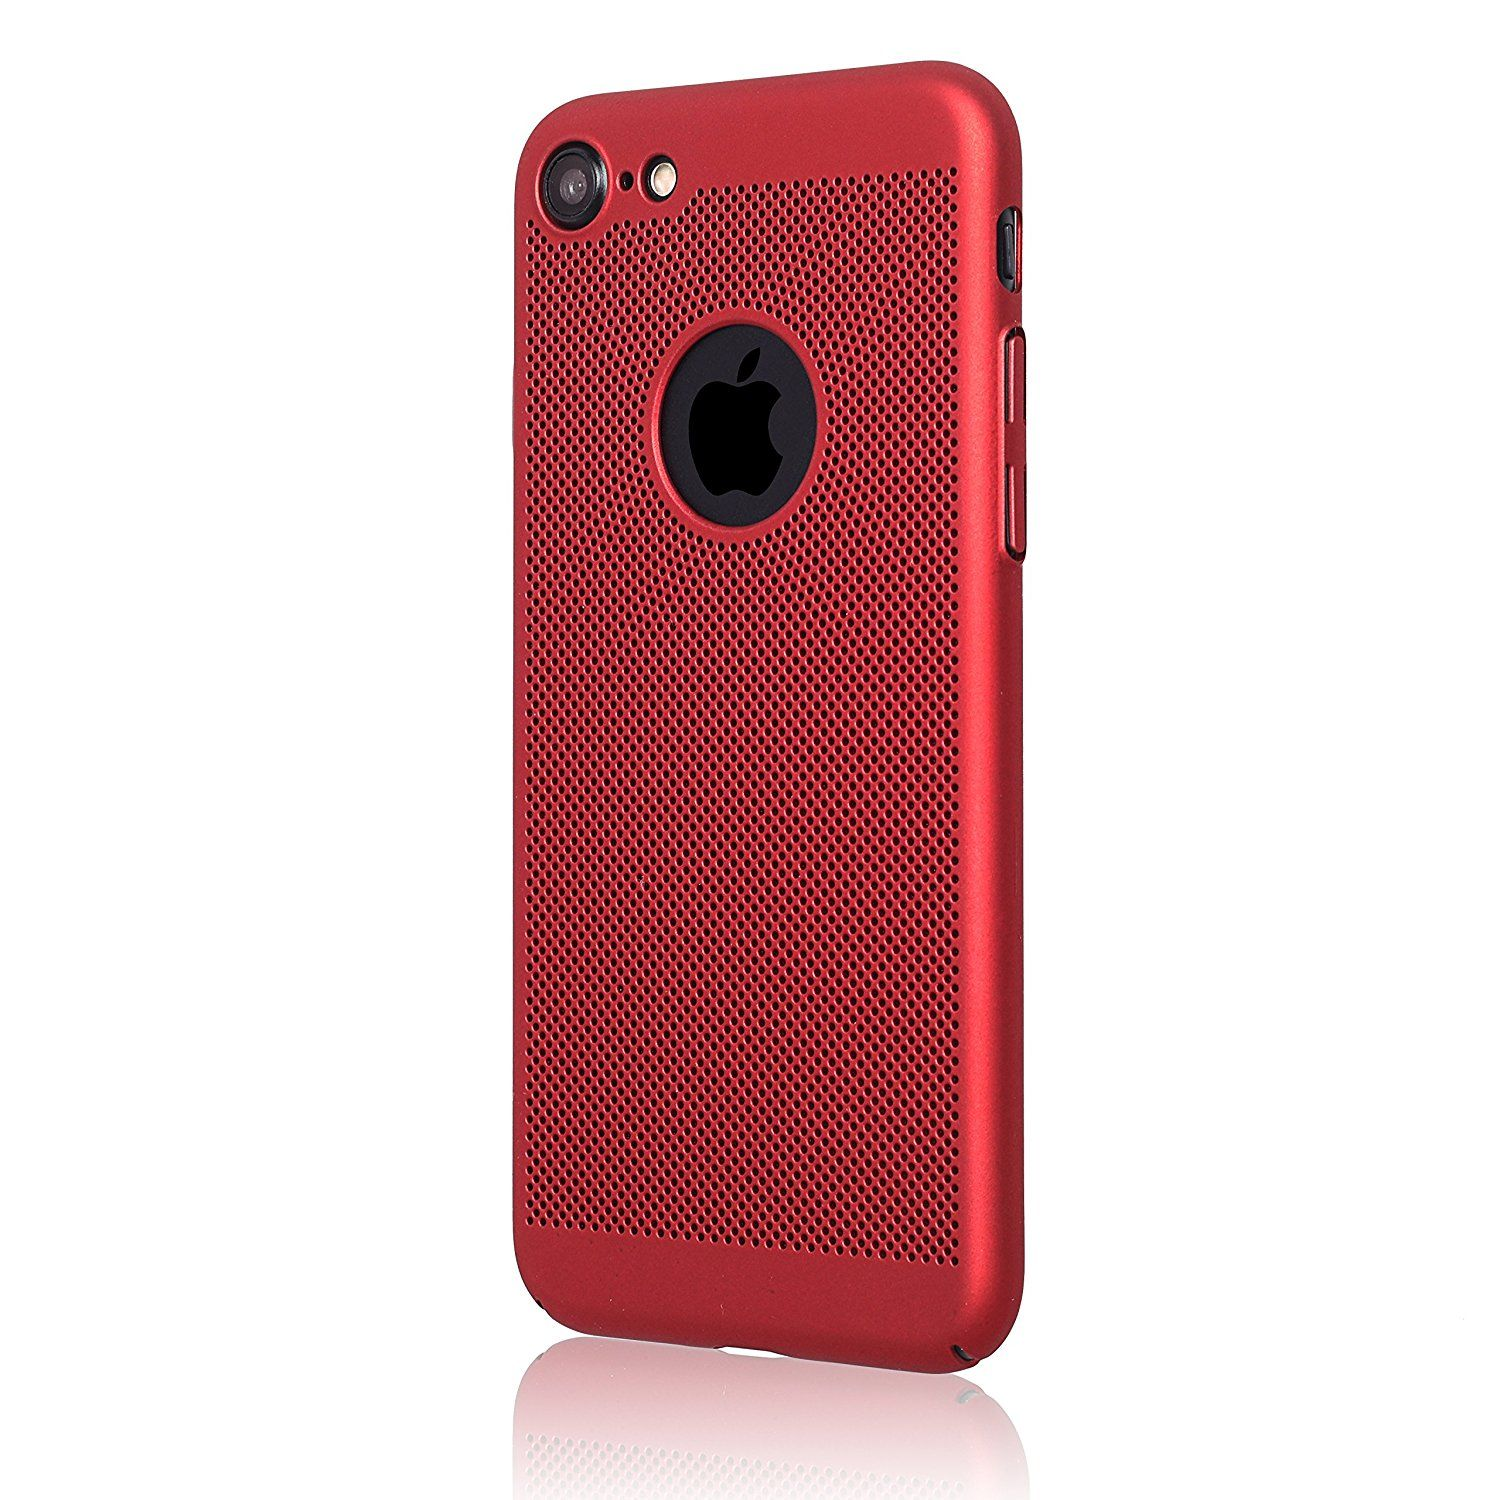 iPhone 7 Case Ultra Thin Slim Fit Hard Shell Protection Premium Anti Fingerprint Mesh Design For iPhone Red